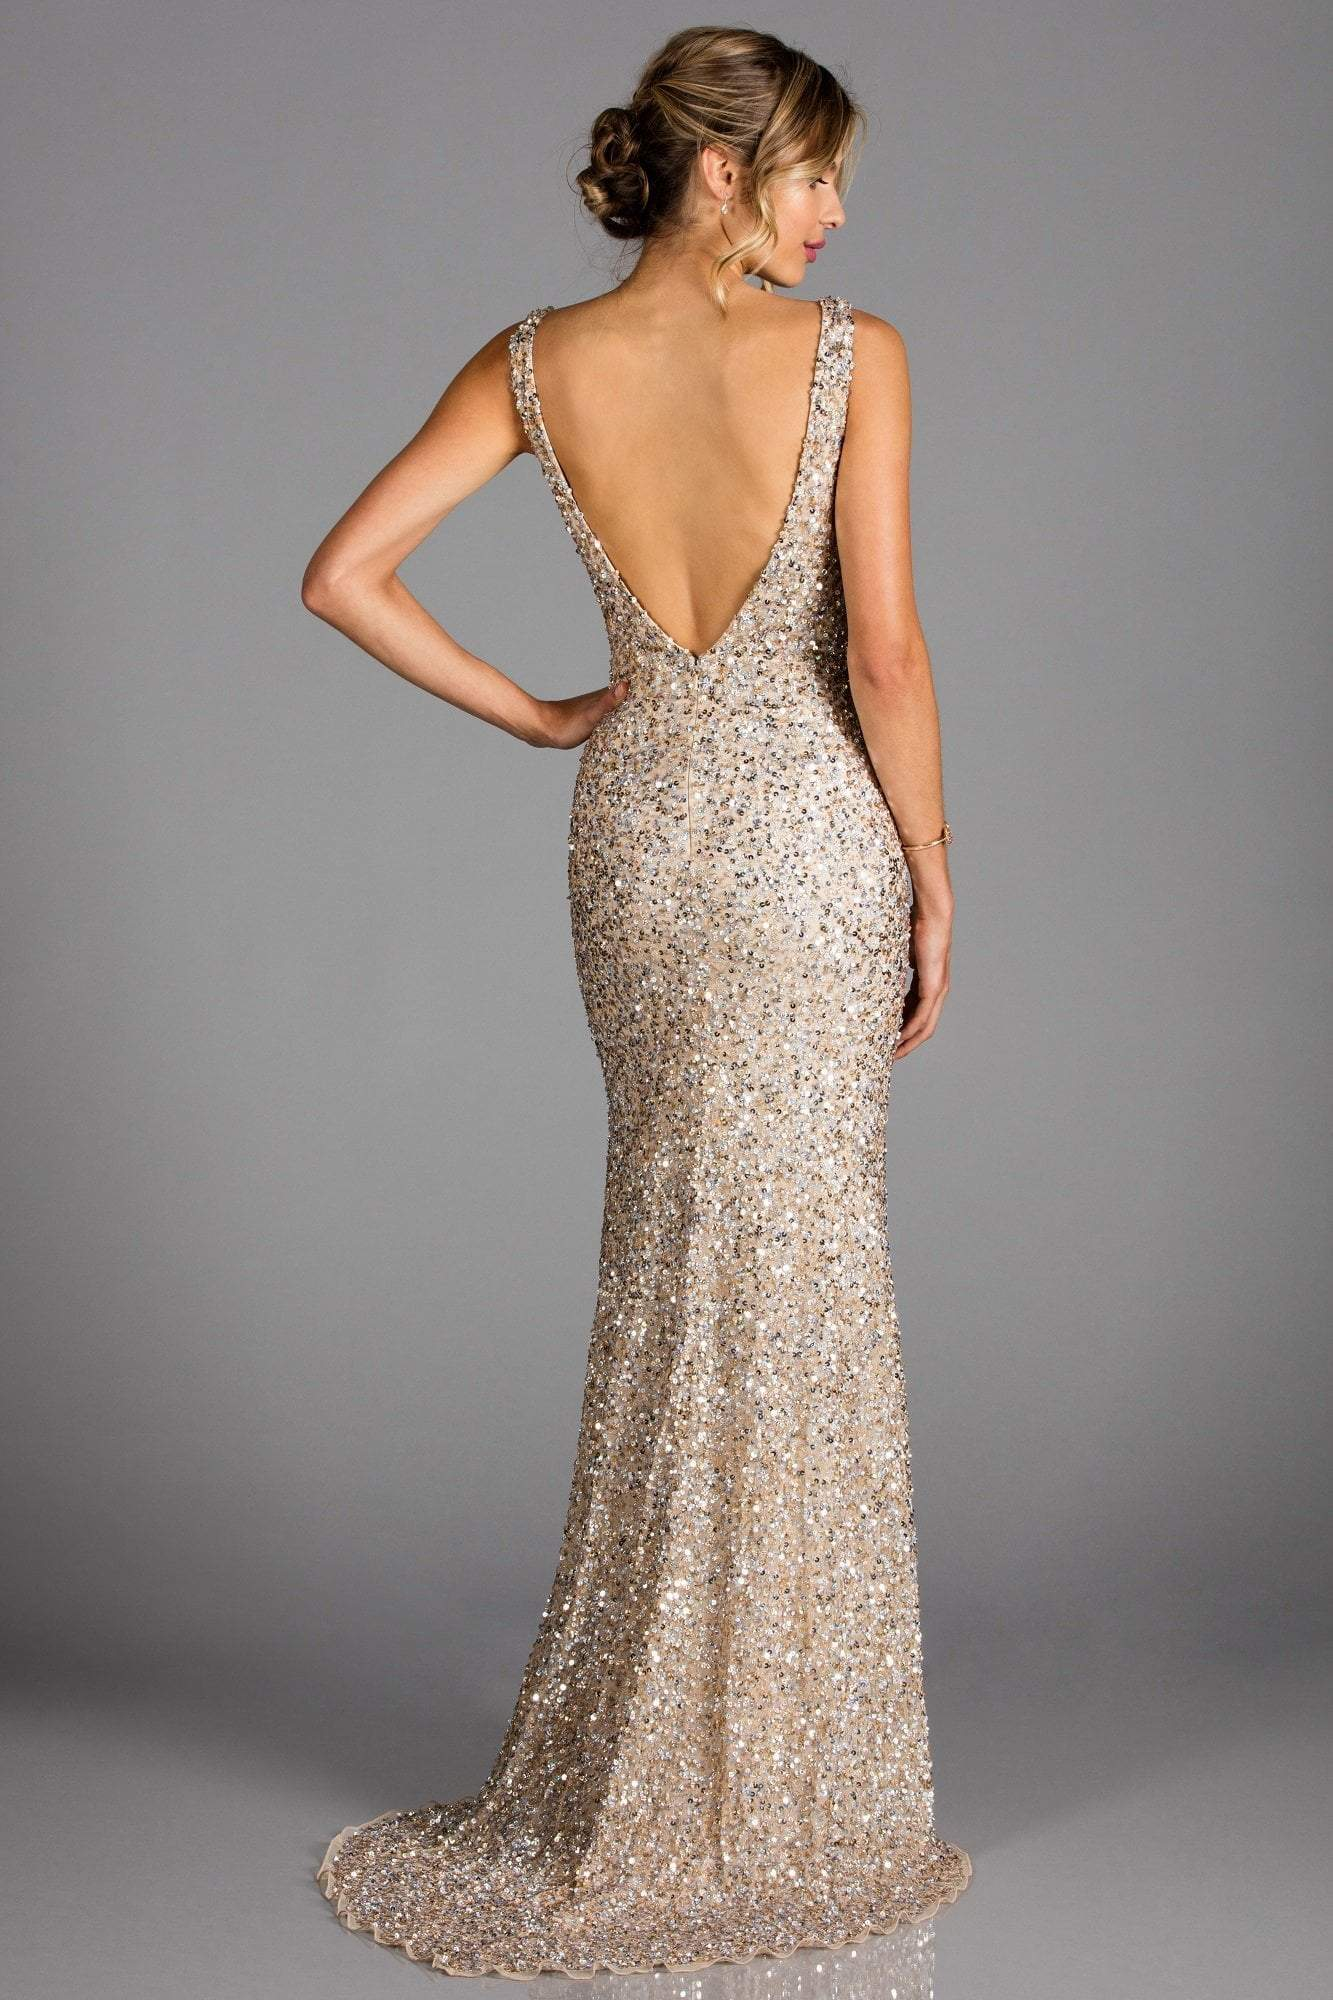 SCALA - Sequined Plunging V-neck Sheath Dress With Train 48883 In Neutral